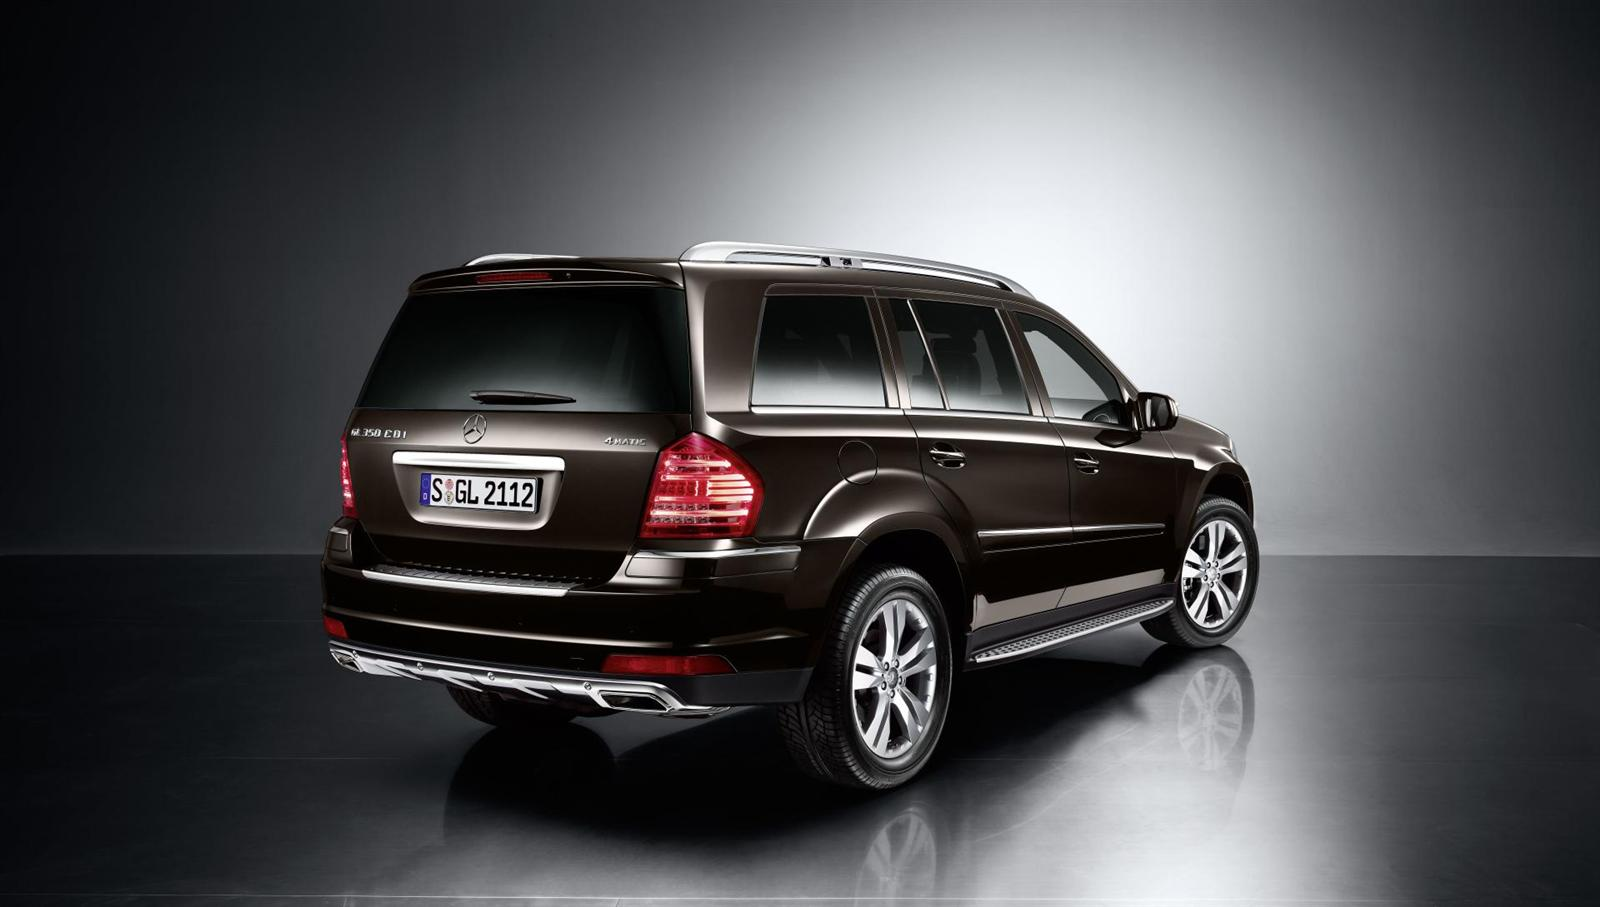 2012 mercedes benz gl class information and photos for 2012 mercedes benz gl550